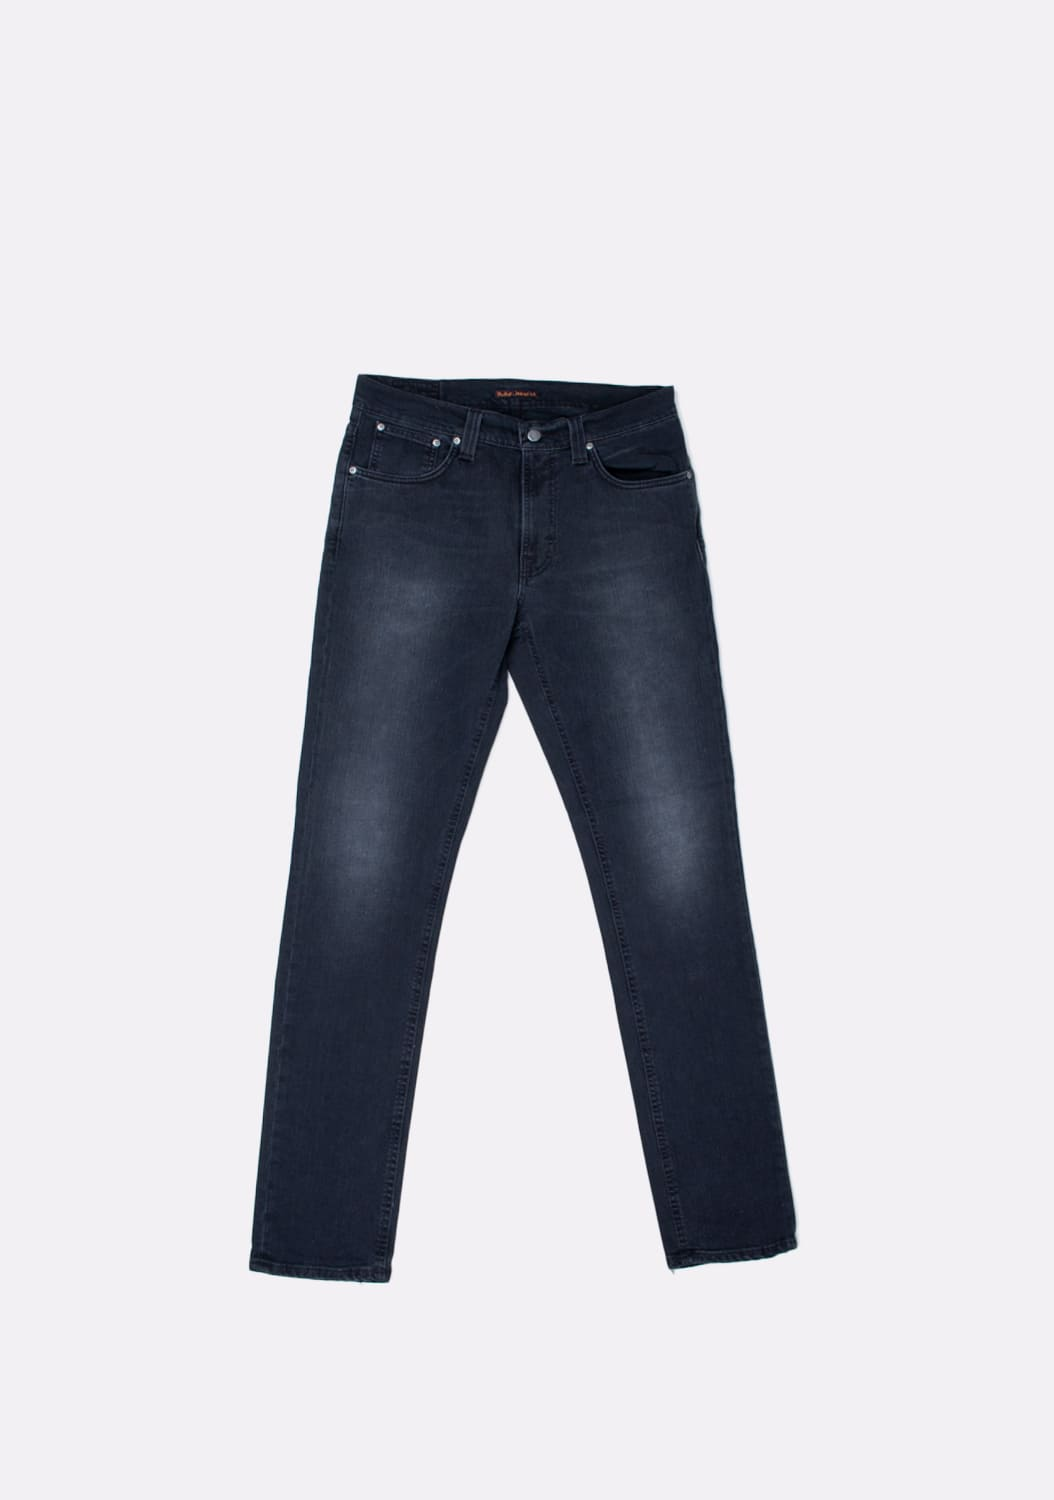 Nudie-Jeans-Lean-Dean-Black-Changes-34-34-juodi-dzinsai (2)